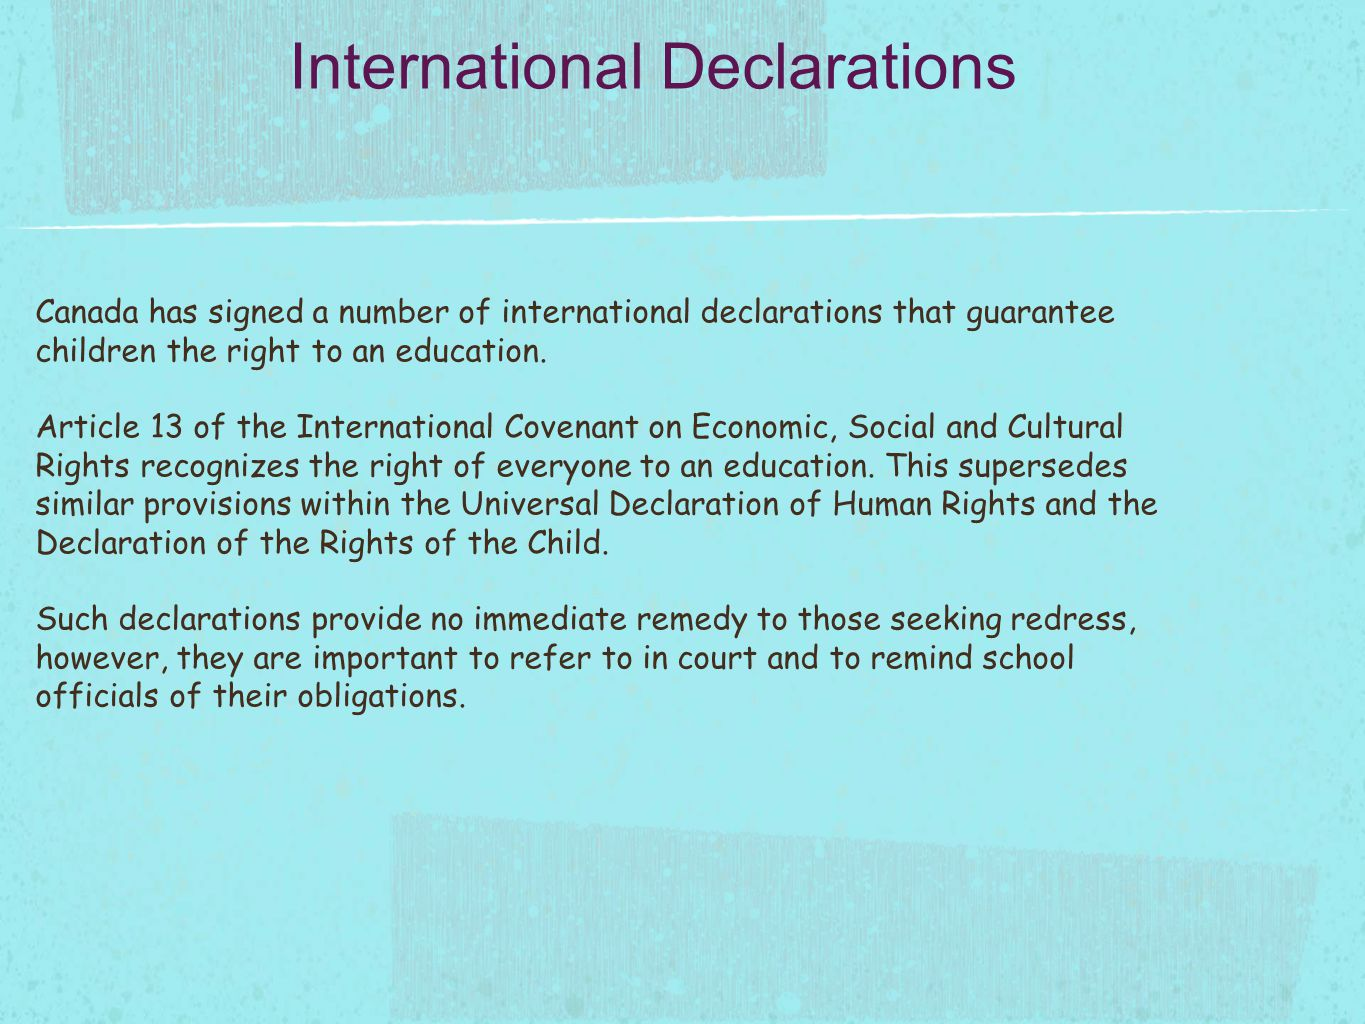 Canada has signed a number of international declarations that guarantee children the right to an education.